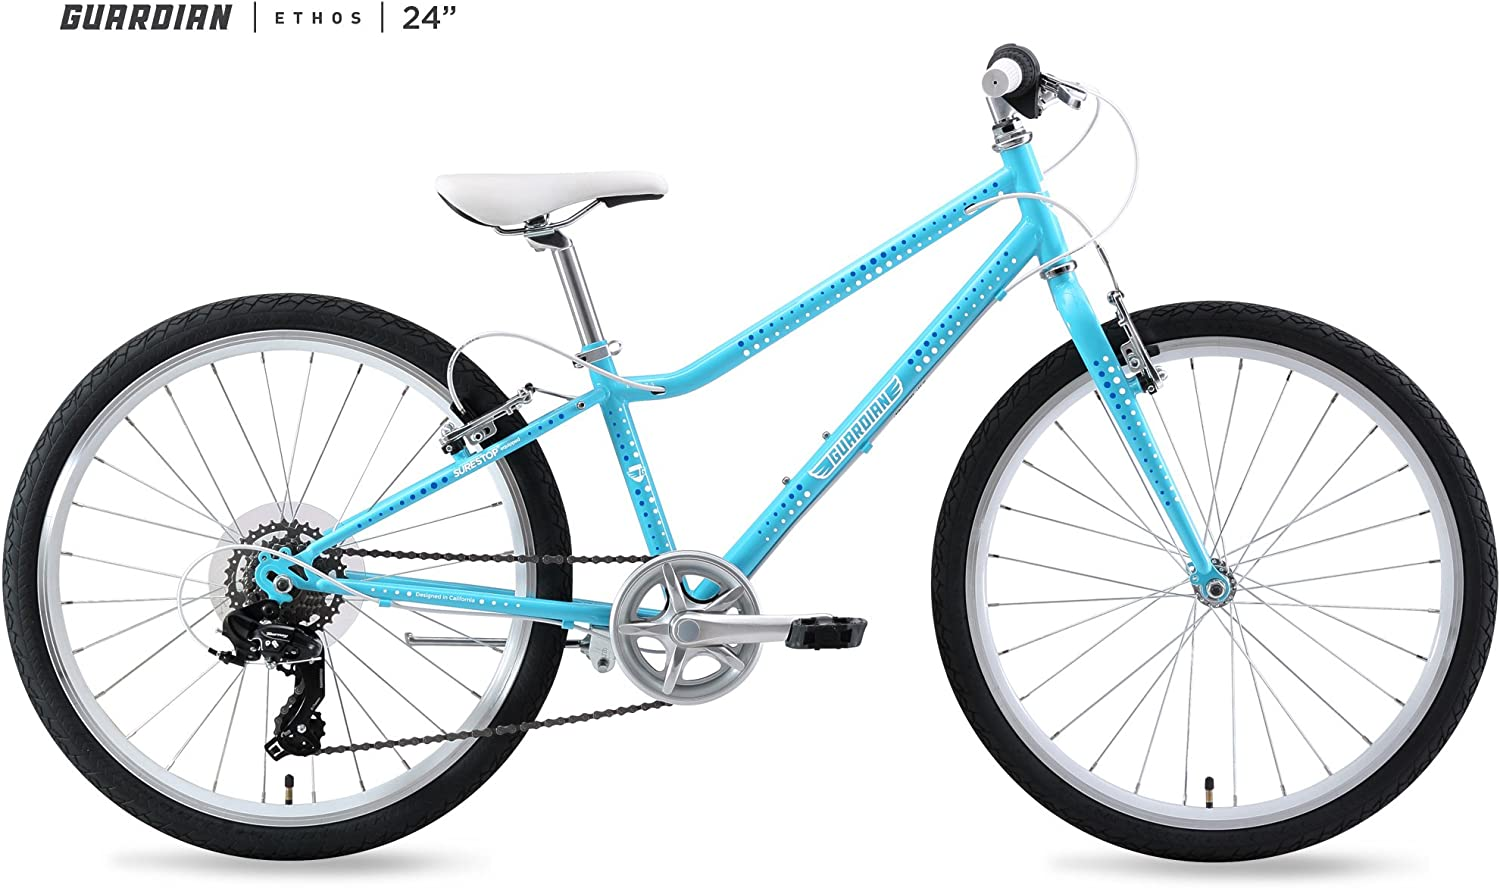 Guardian Kids Bikes Ethos Multiple Colors for Boys/Girls